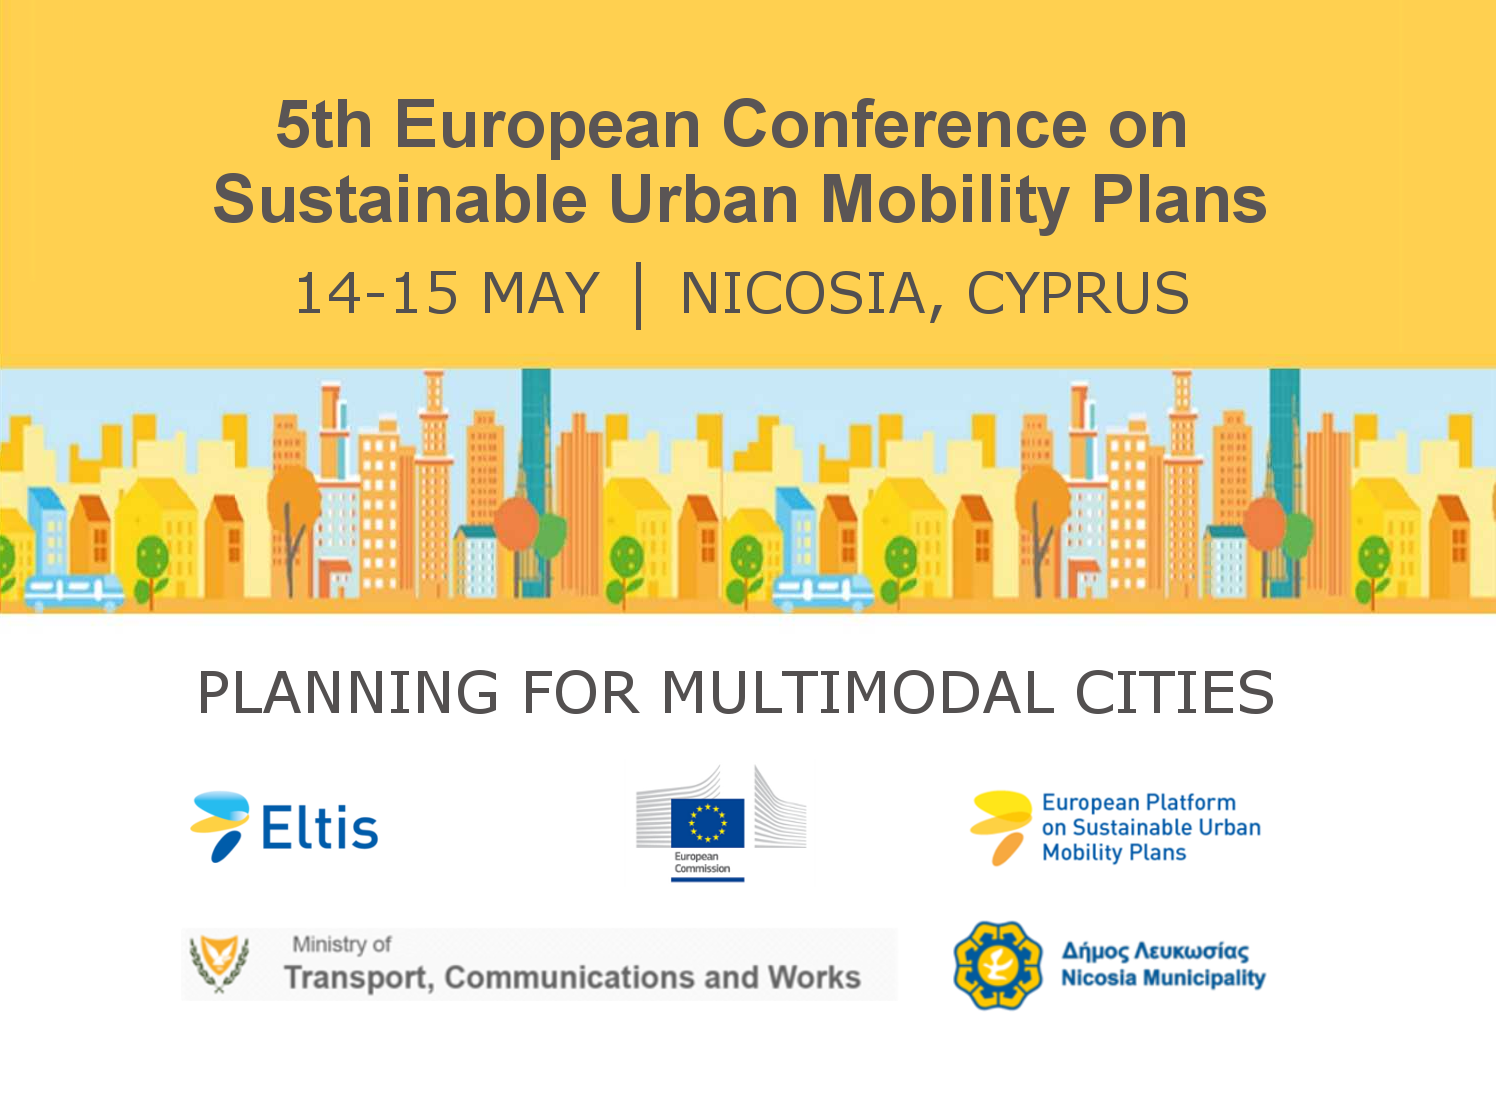 5th European Conference on Sustainable Urban Mobility Plans (SUMPs)